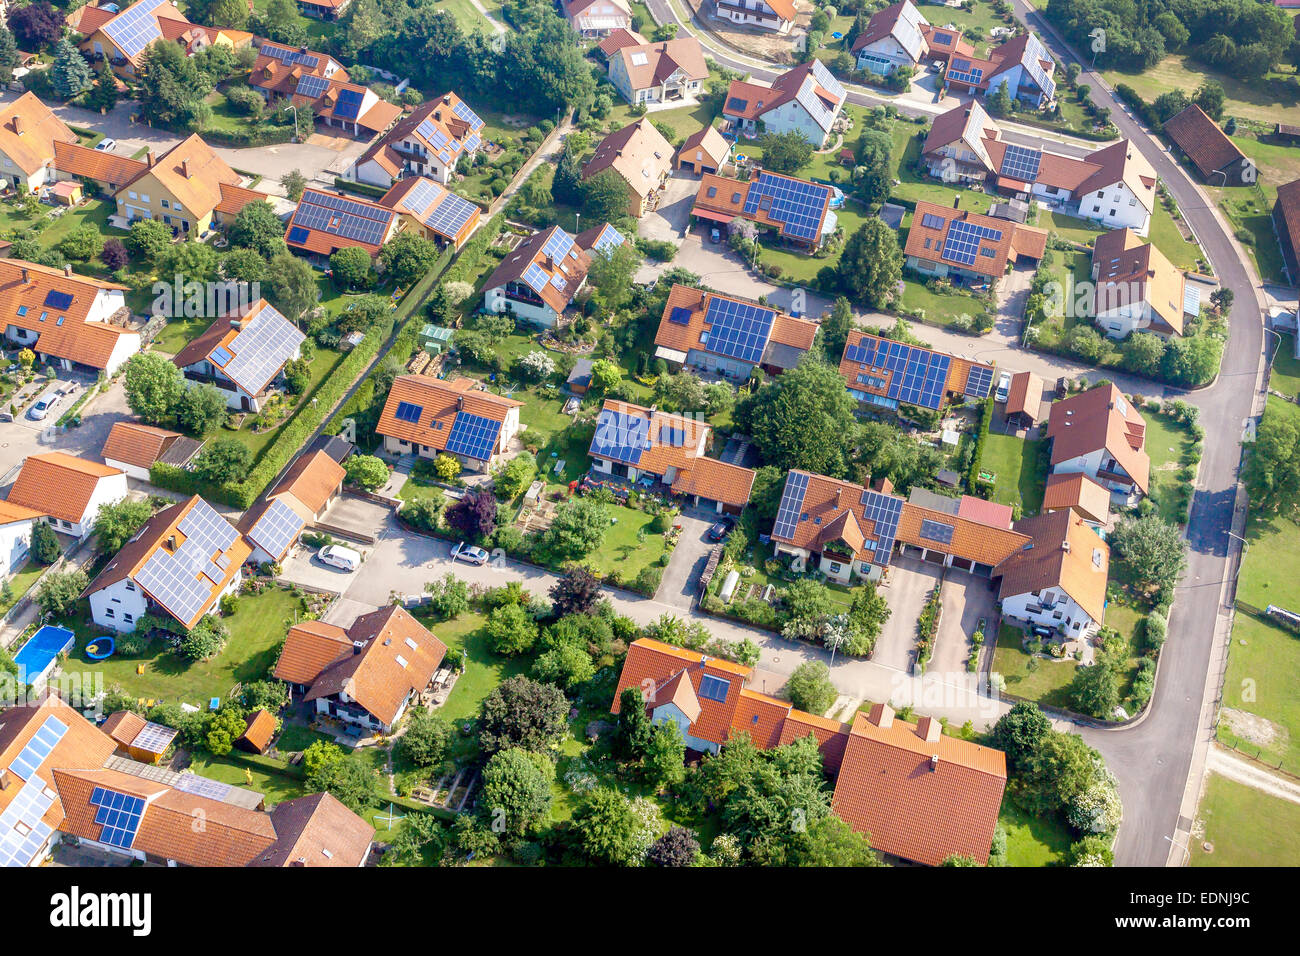 Aerial View New Housing Estate With Photovoltaic Panels